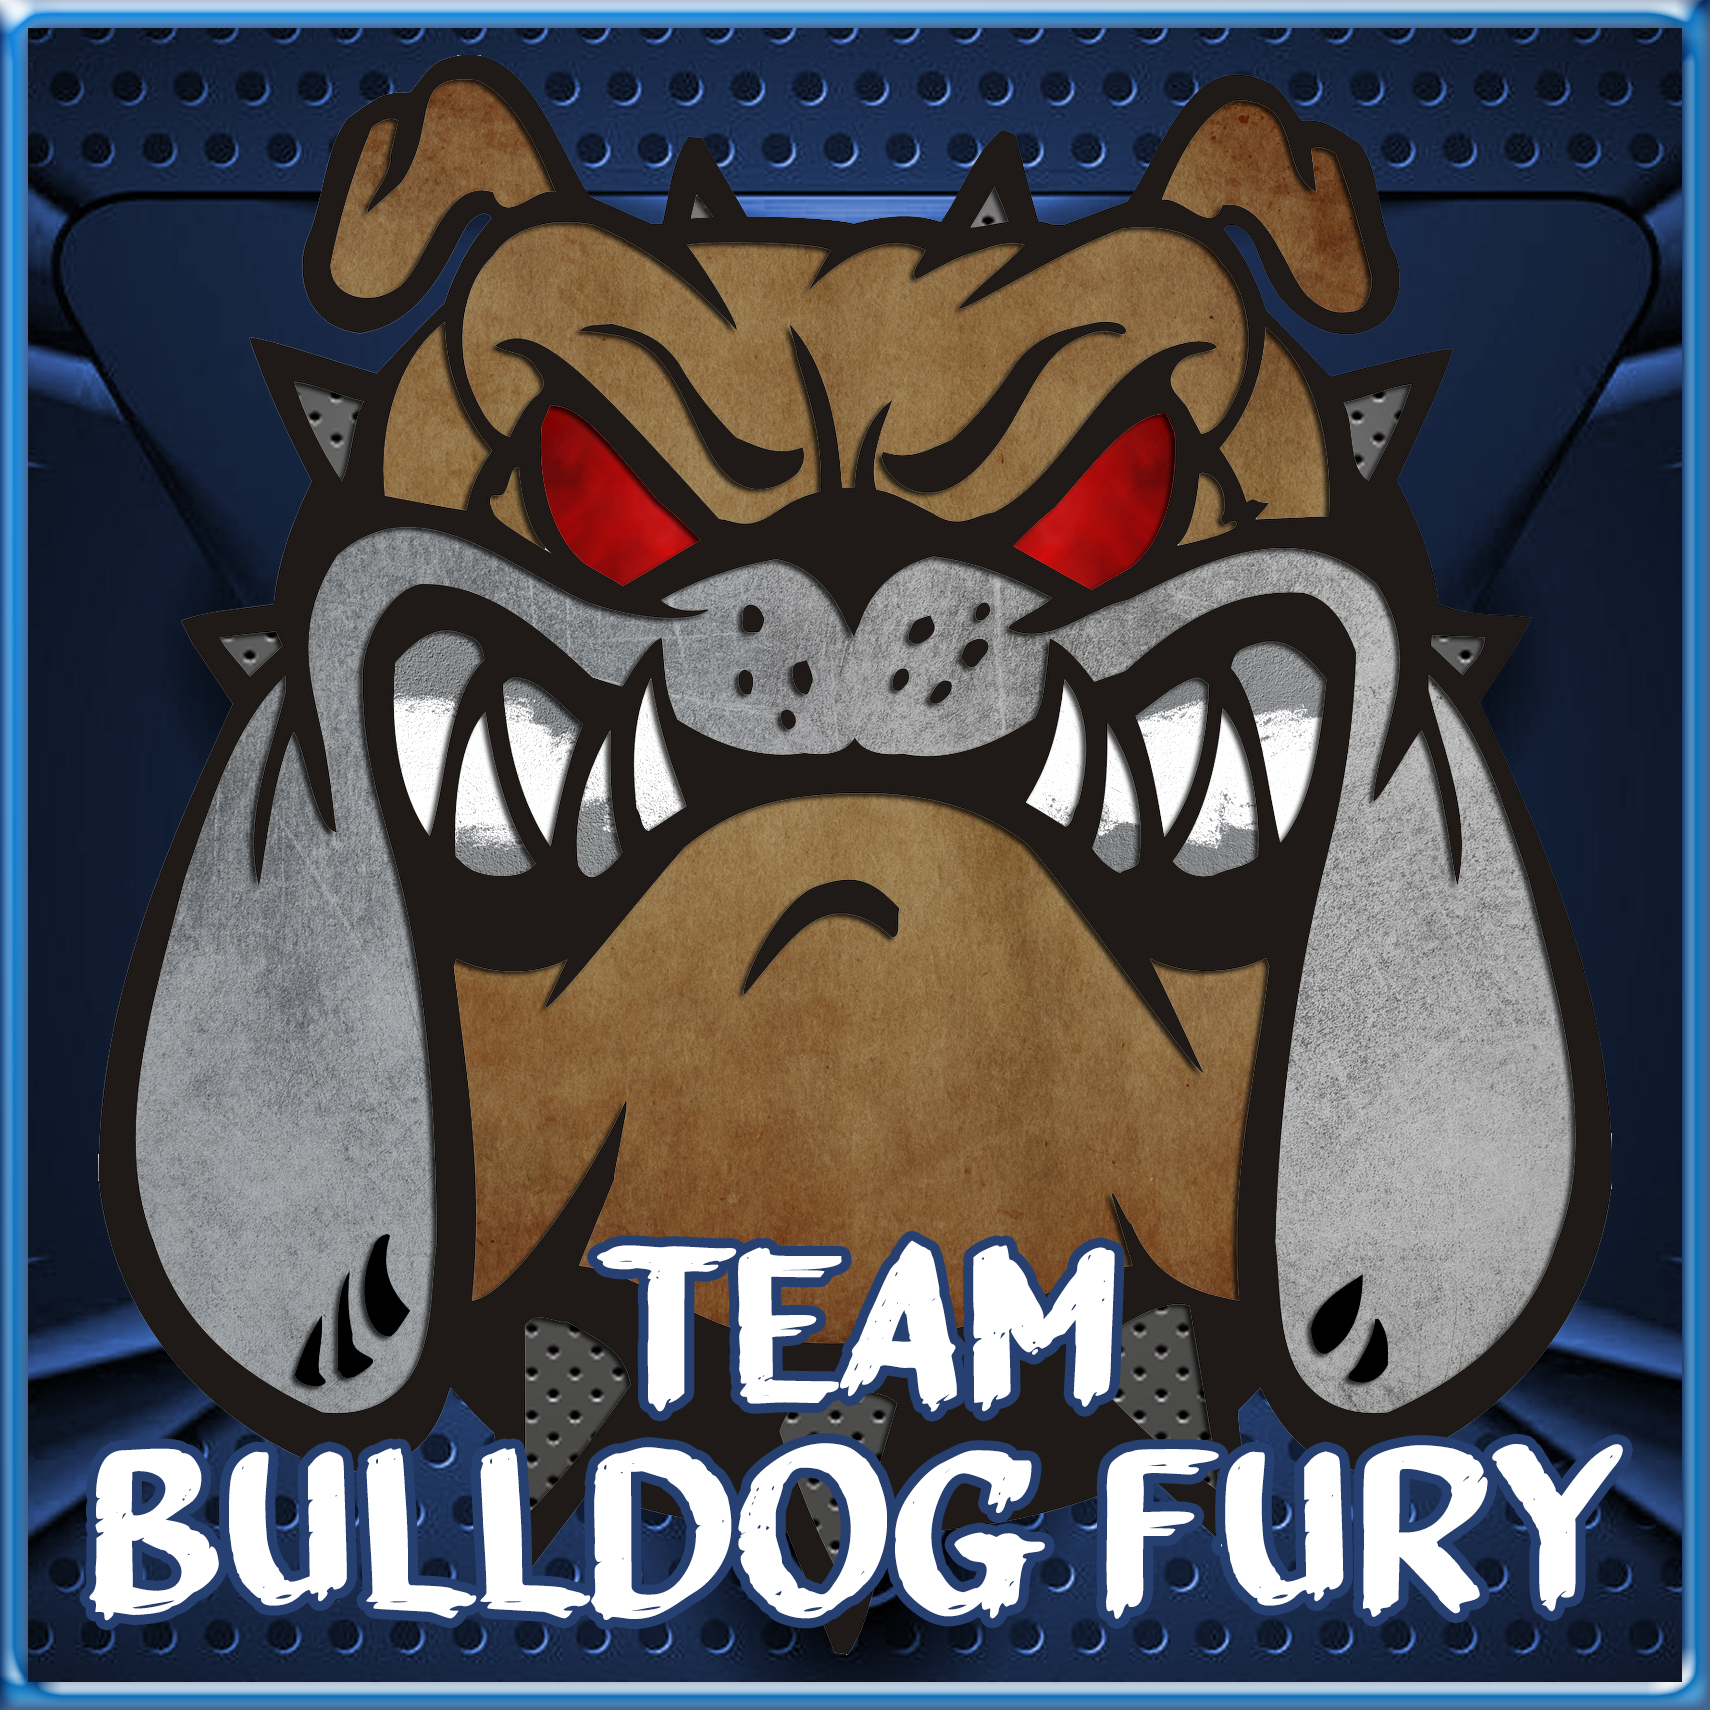 Team Bulldog Fury